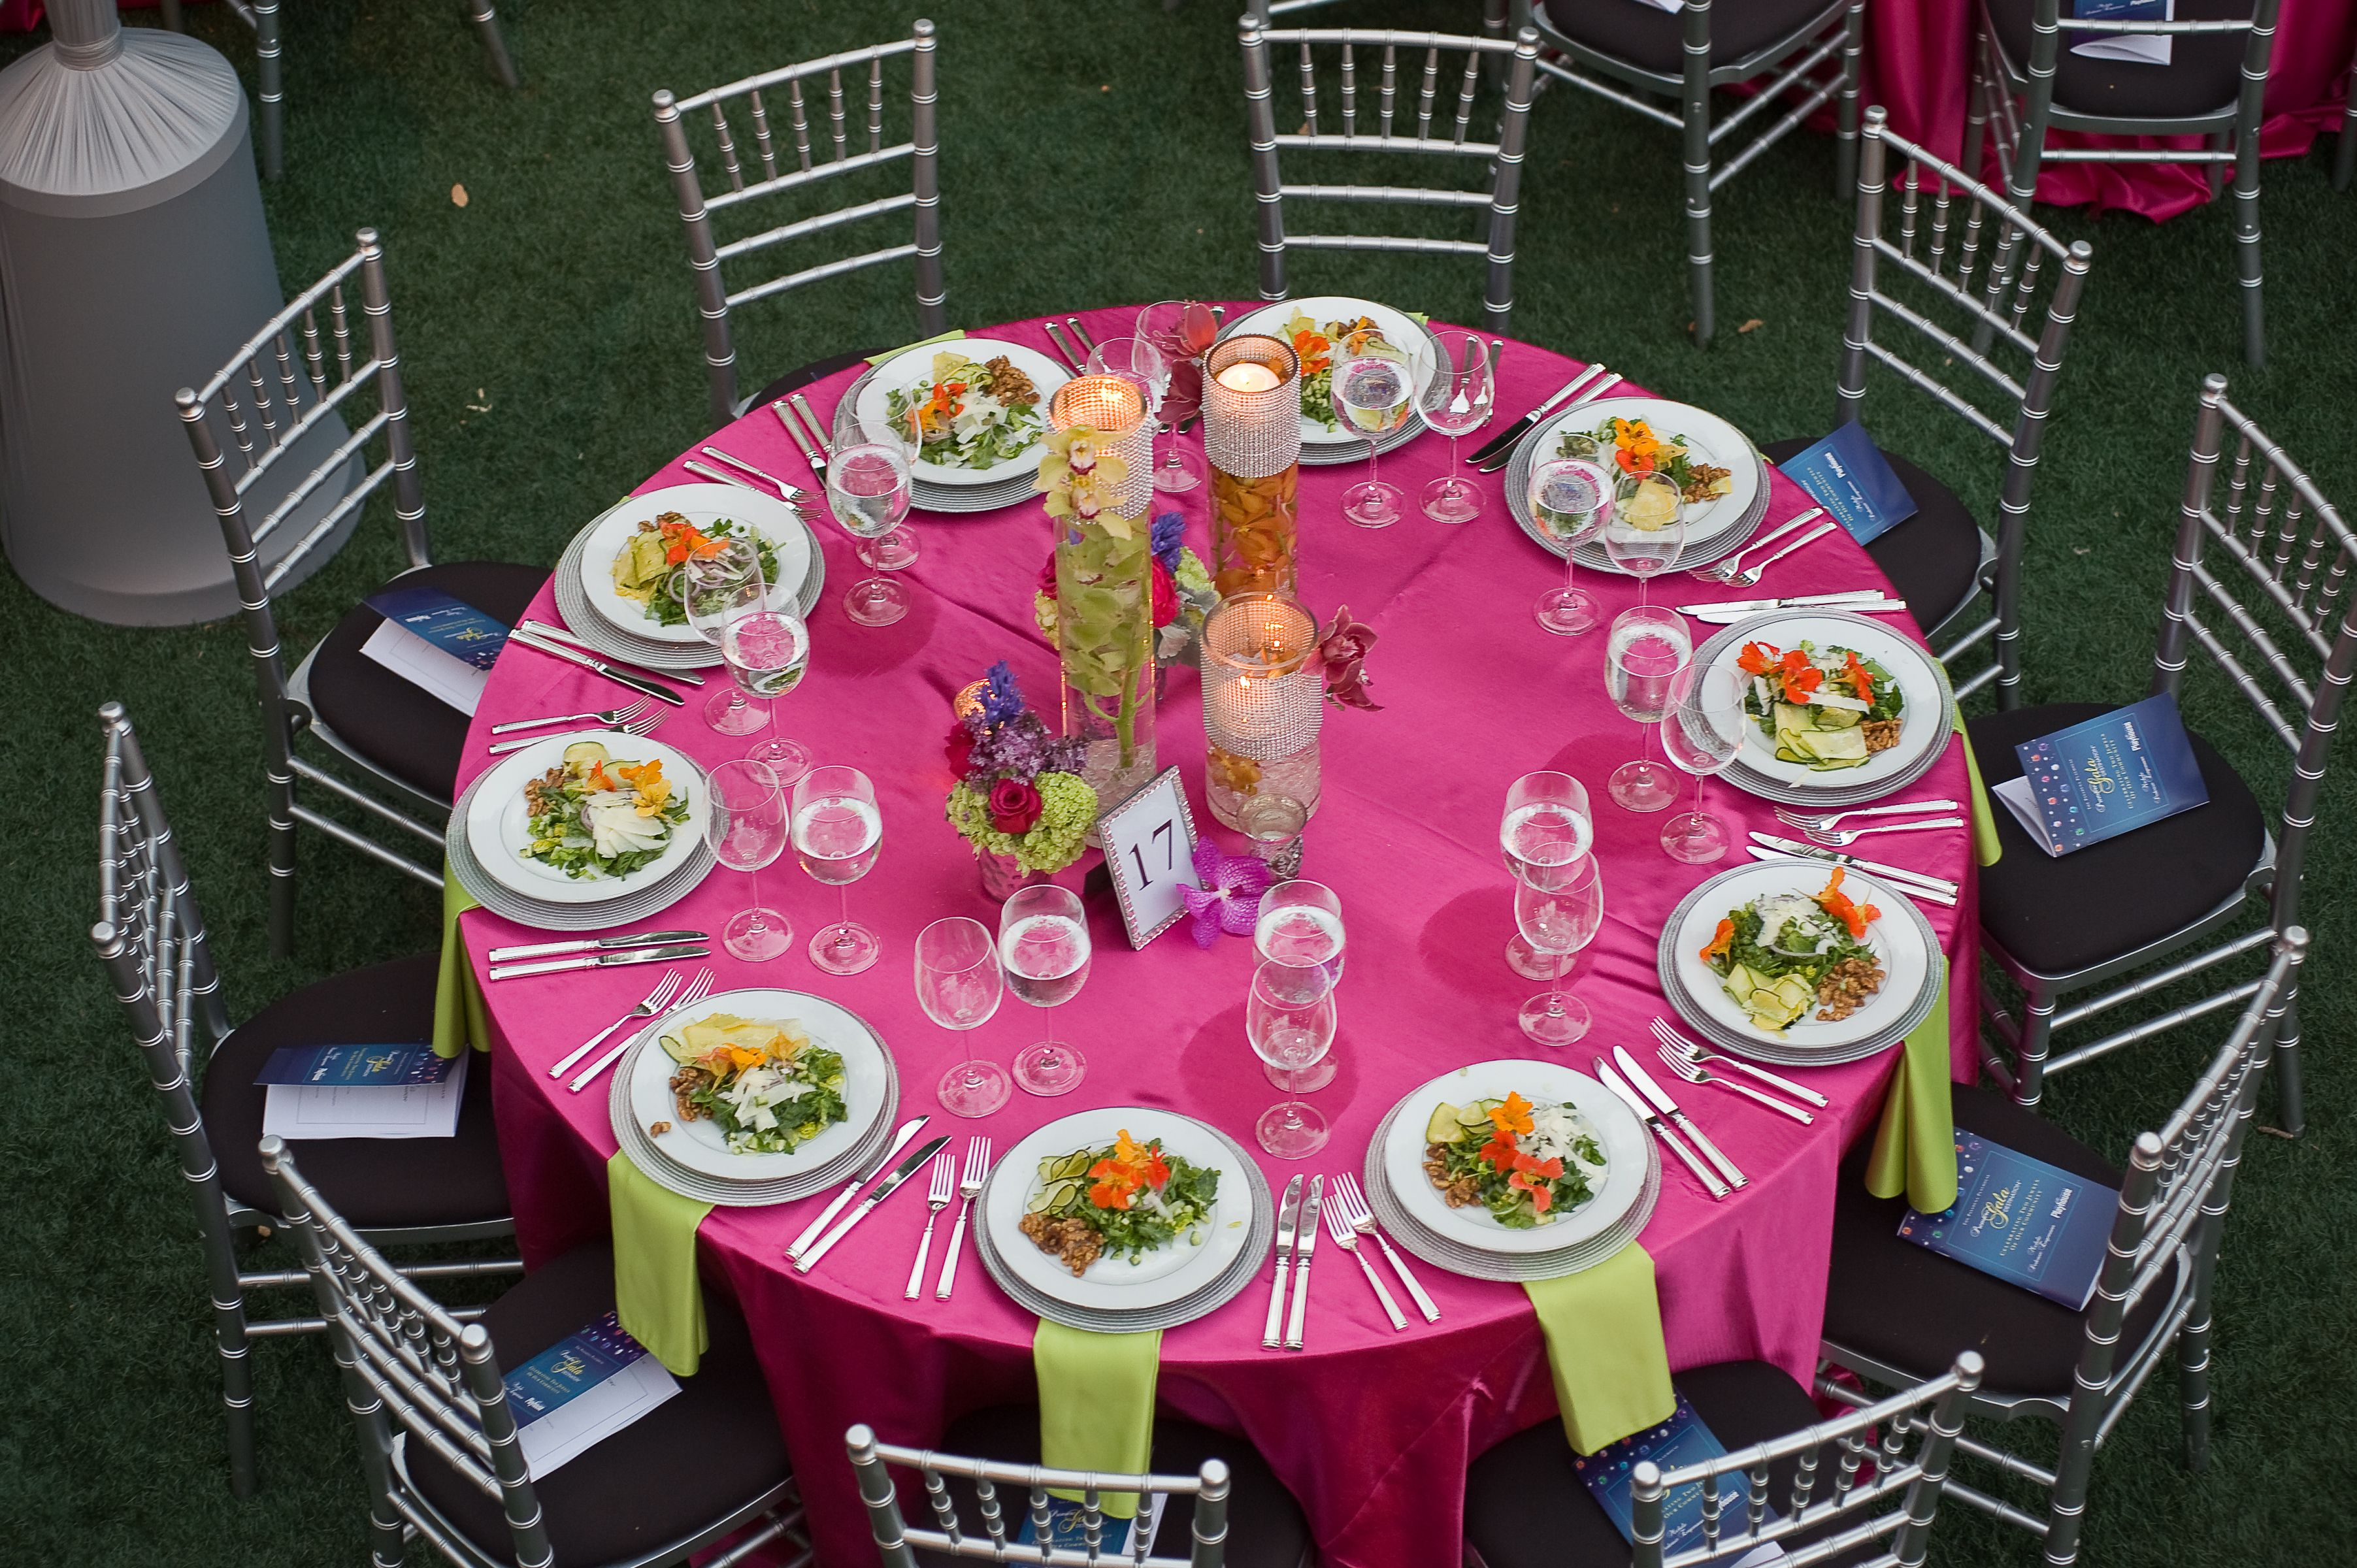 Hot Pink! These Table Linens Make This Event Pop. Thank You To Partner Doyle